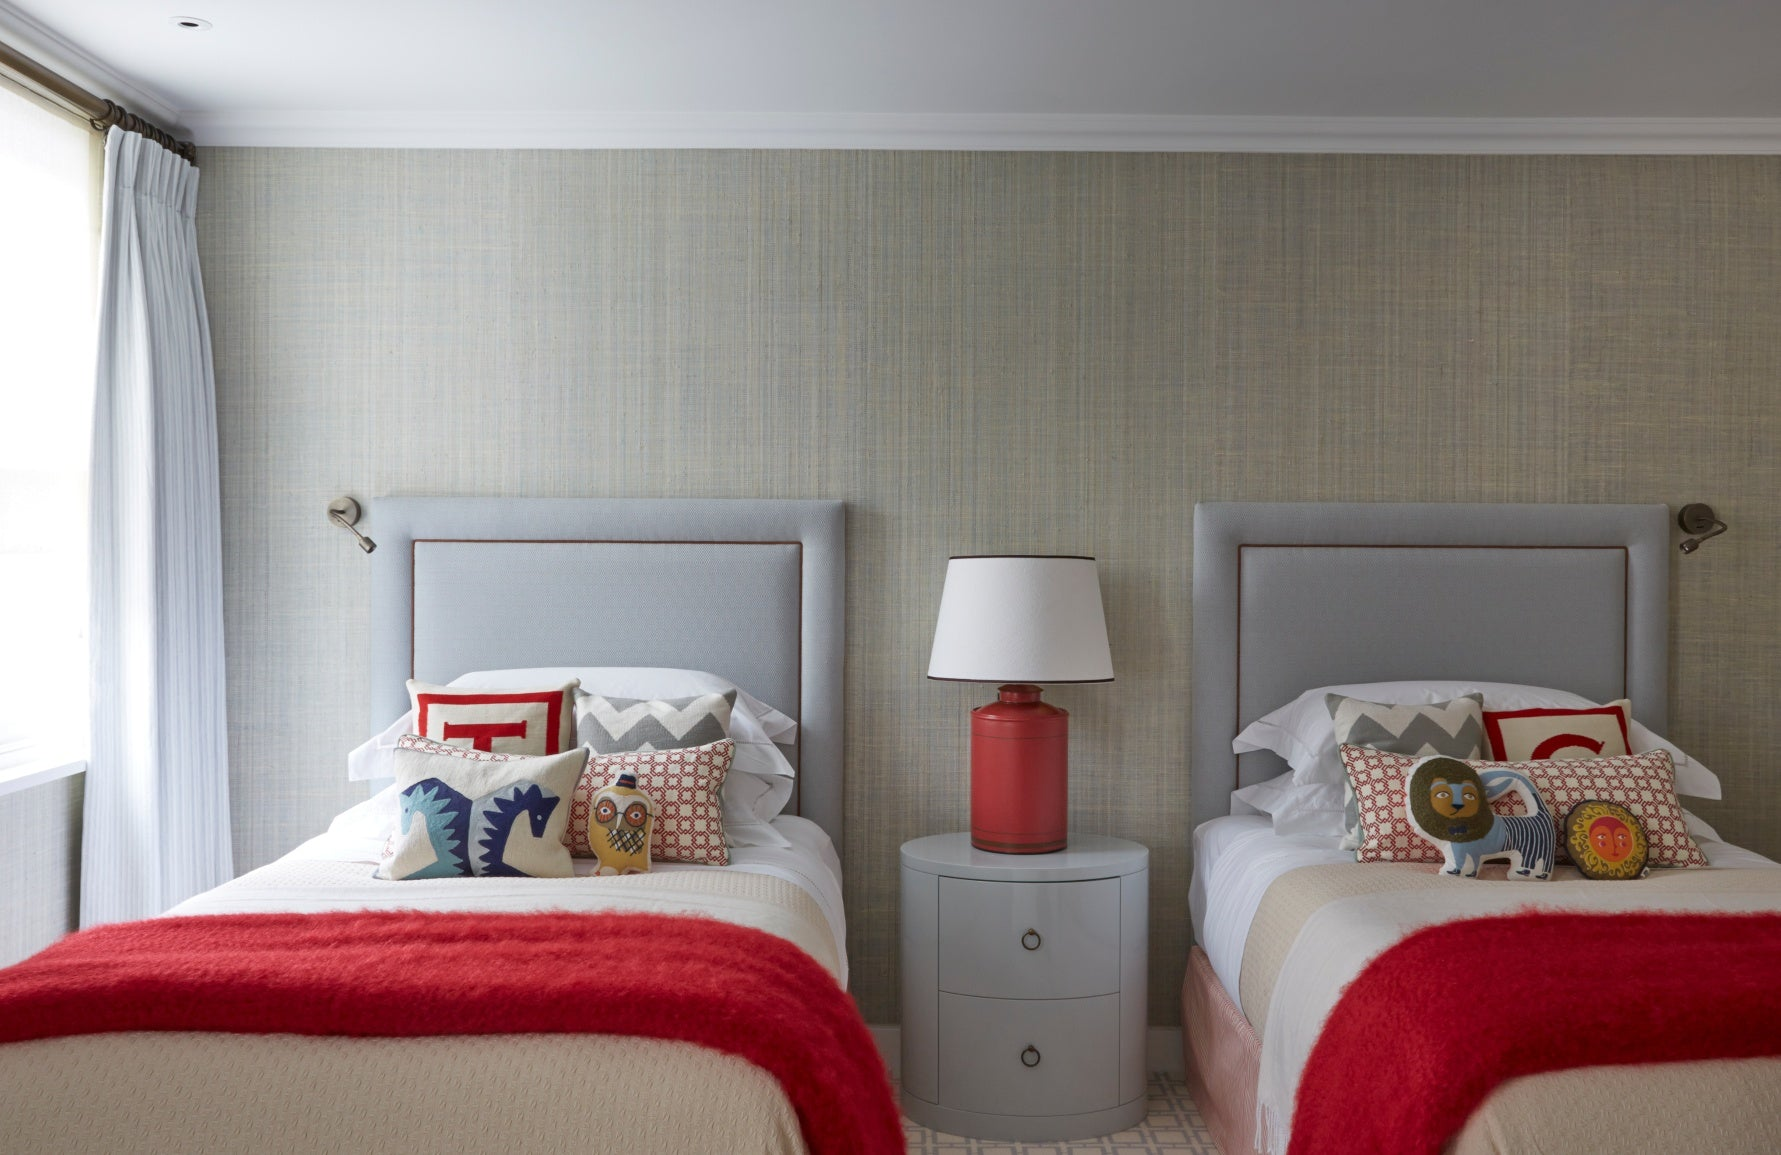 Childrens Bedroom Ideas _ Helen Green Design _ Read more in the LuxDeco.com Style Guide